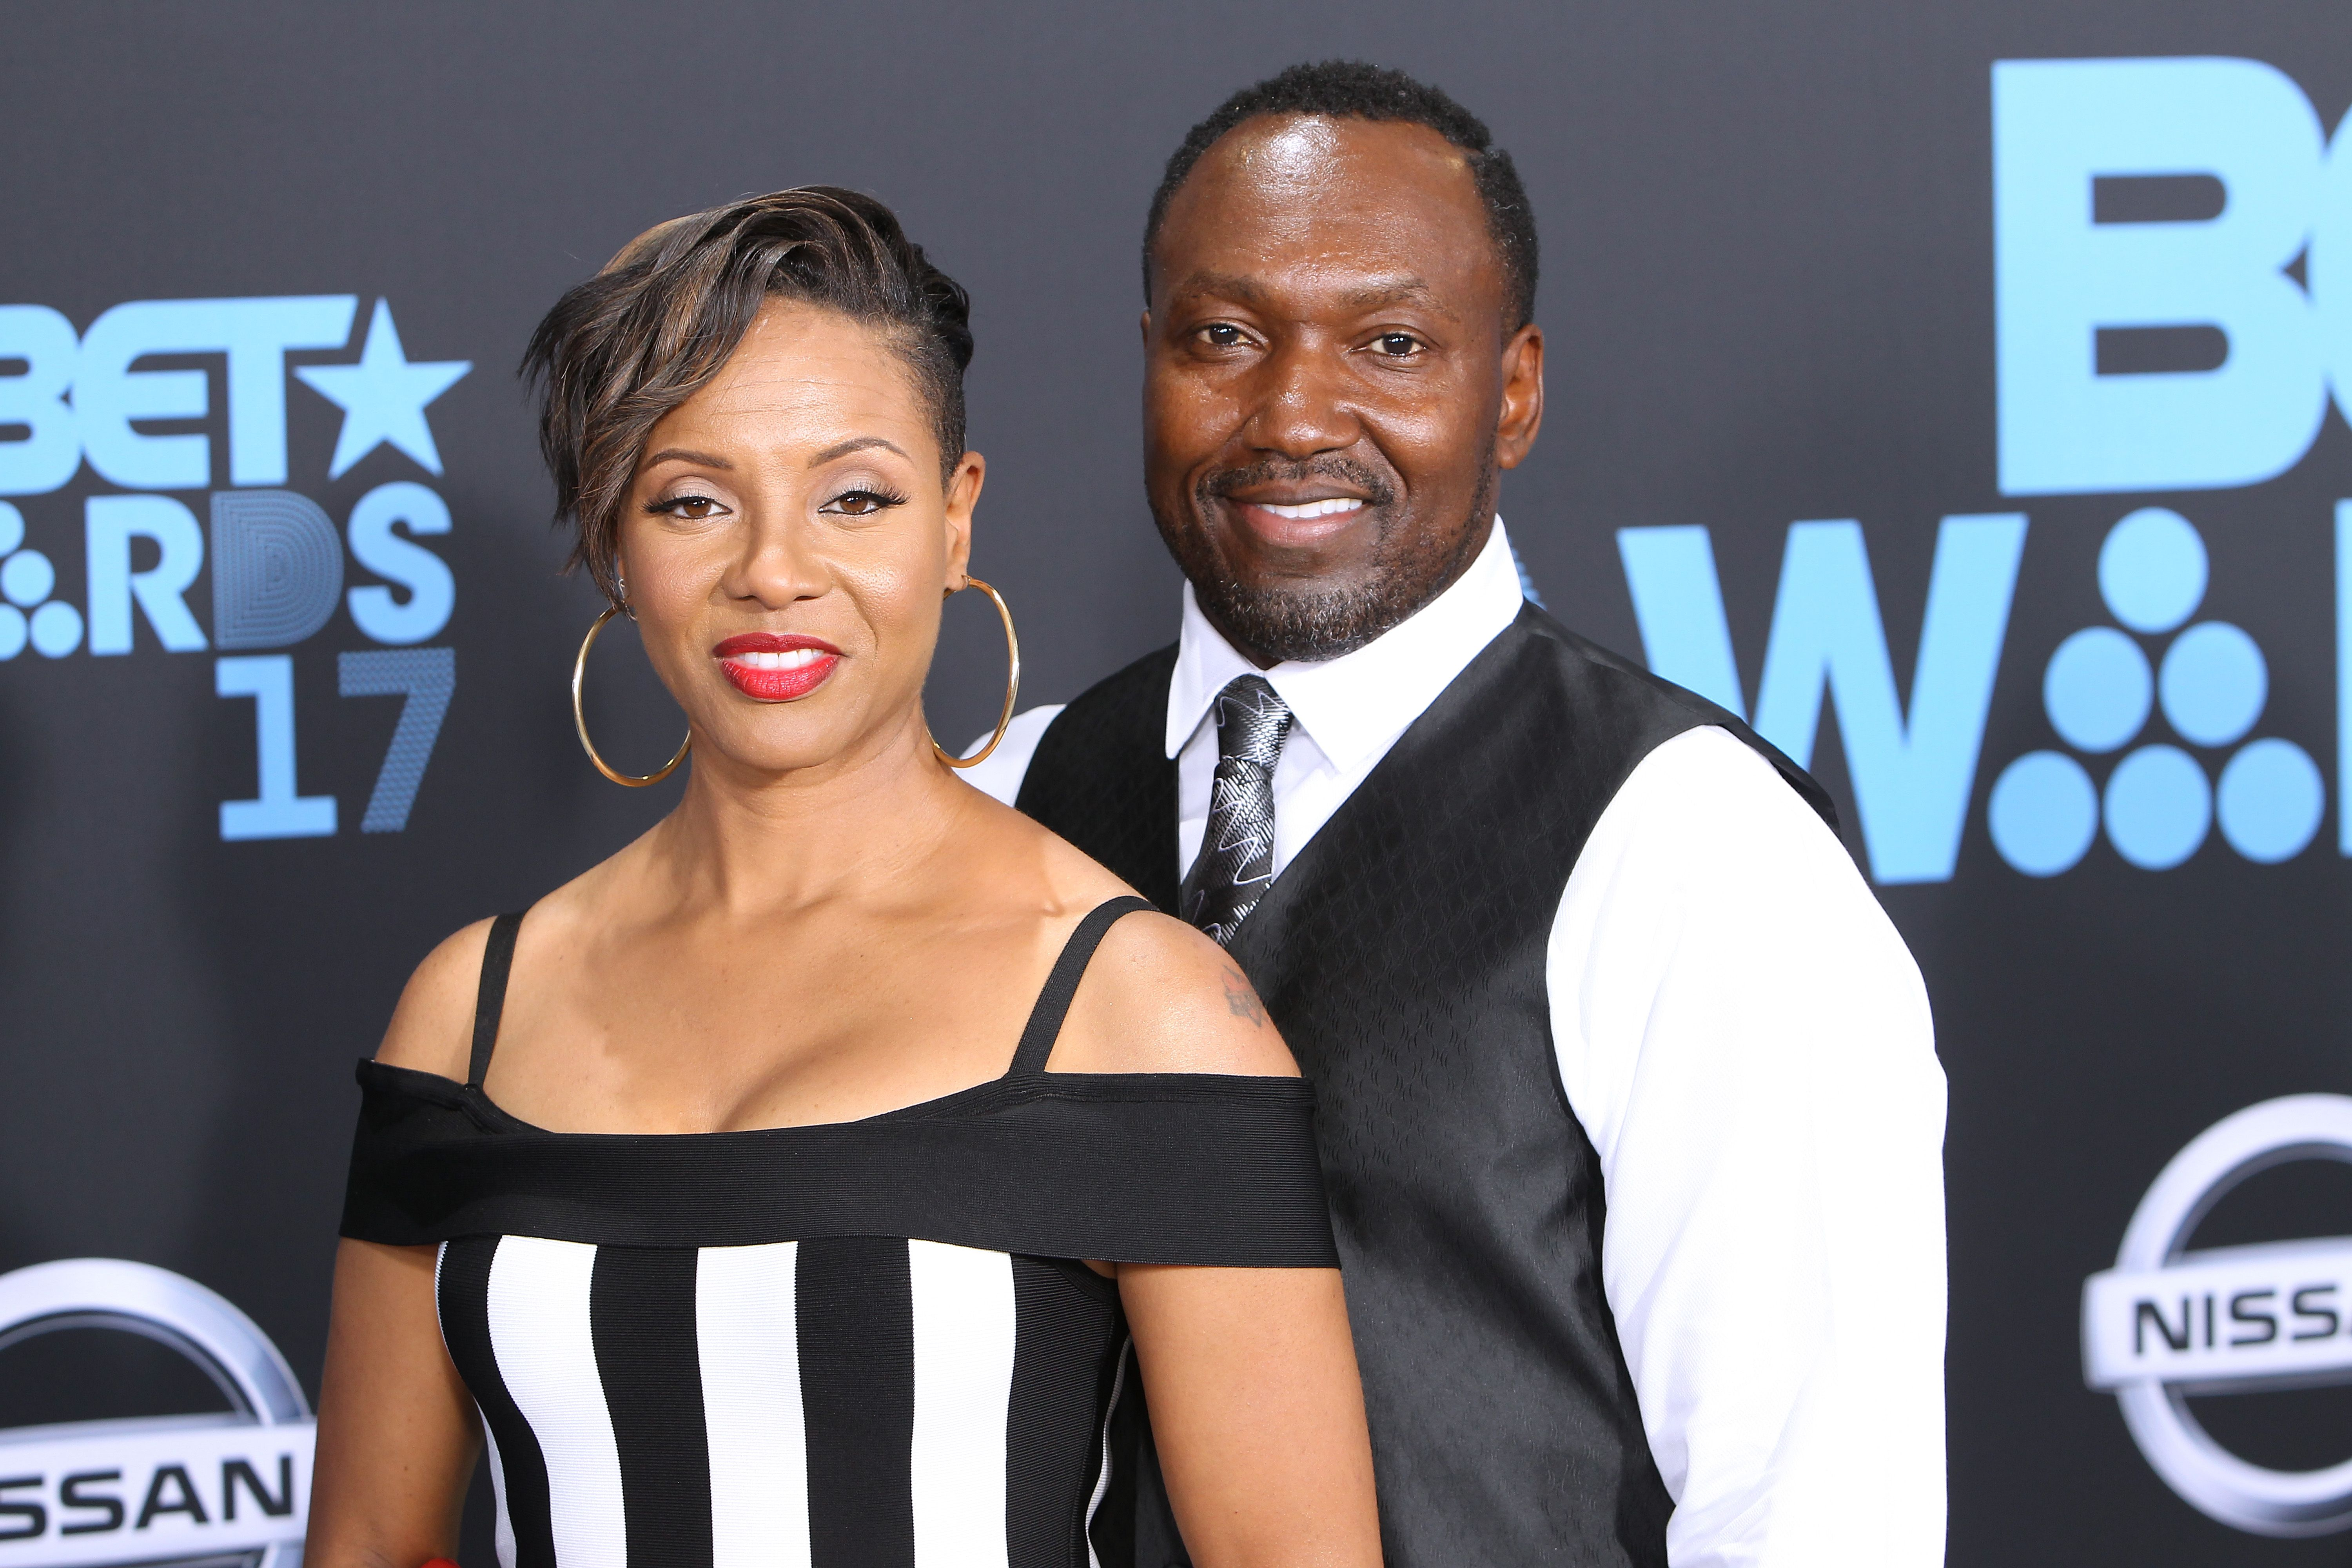 Music artist MC Lyte and John Wyche arrive at the 2017 BET Awards at Microsoft Theater on June 25, 2017 in Los Angeles, California. | Photo: Getty Images